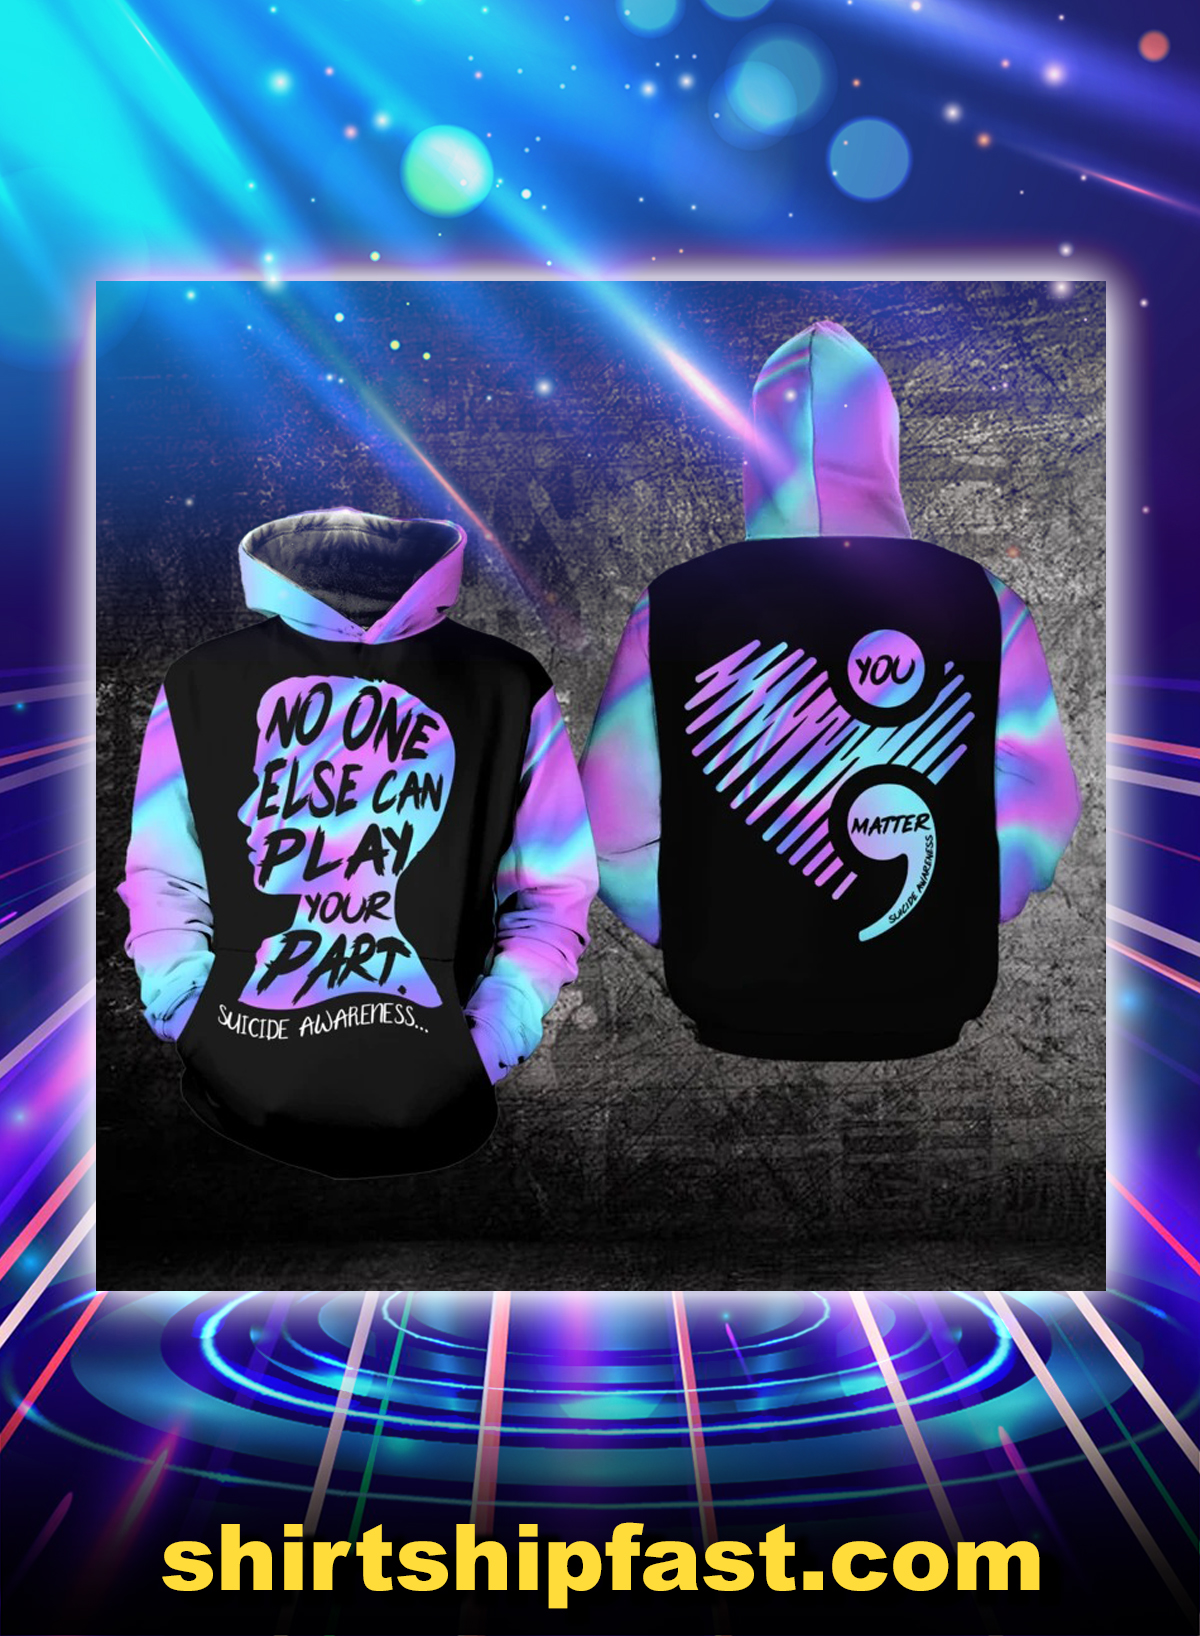 No one else can play your part suicide awareness all over prints hoodie - Picture 1